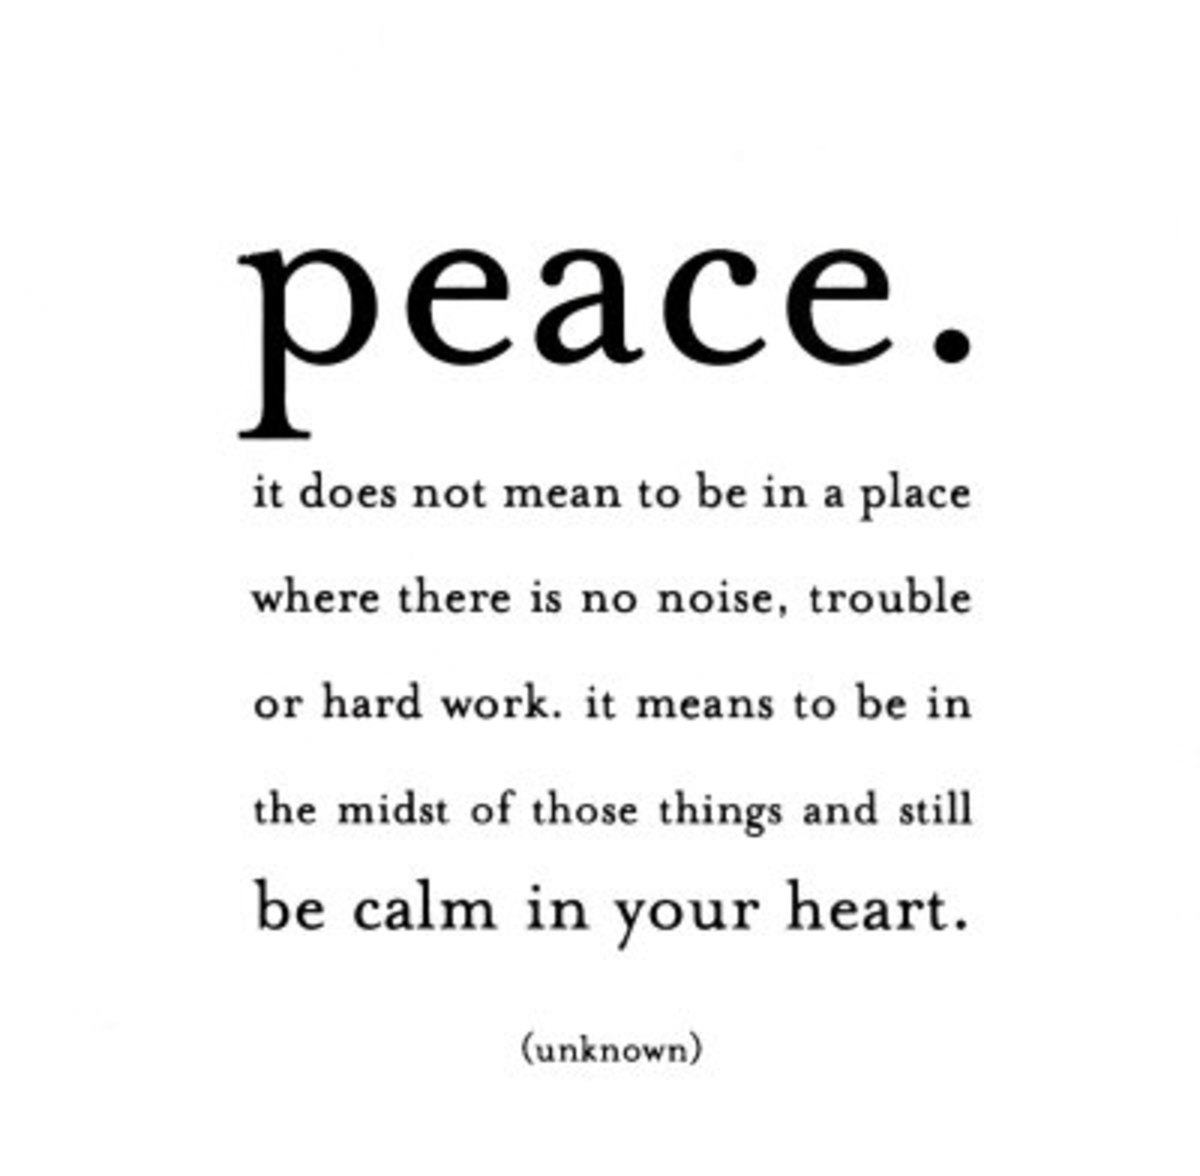 The 5 Elements of a Peaceful Lifestyle